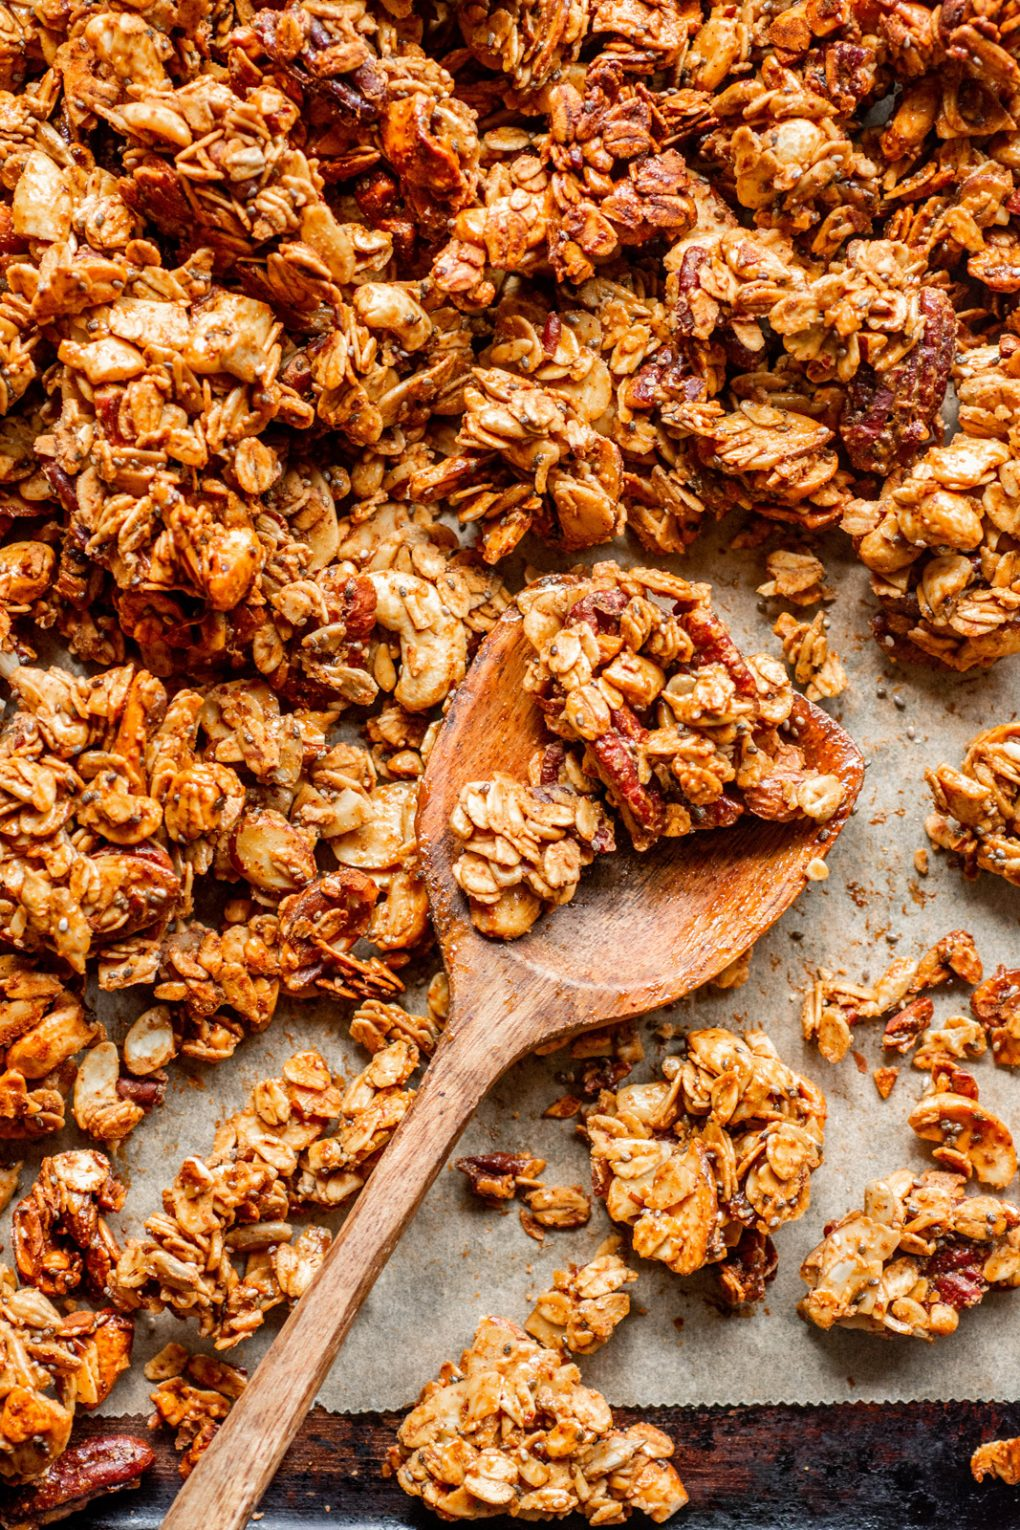 Overhead shot of a wooden spoon holding a few crunchy granola clusters, on a parchment lined baking sheet.